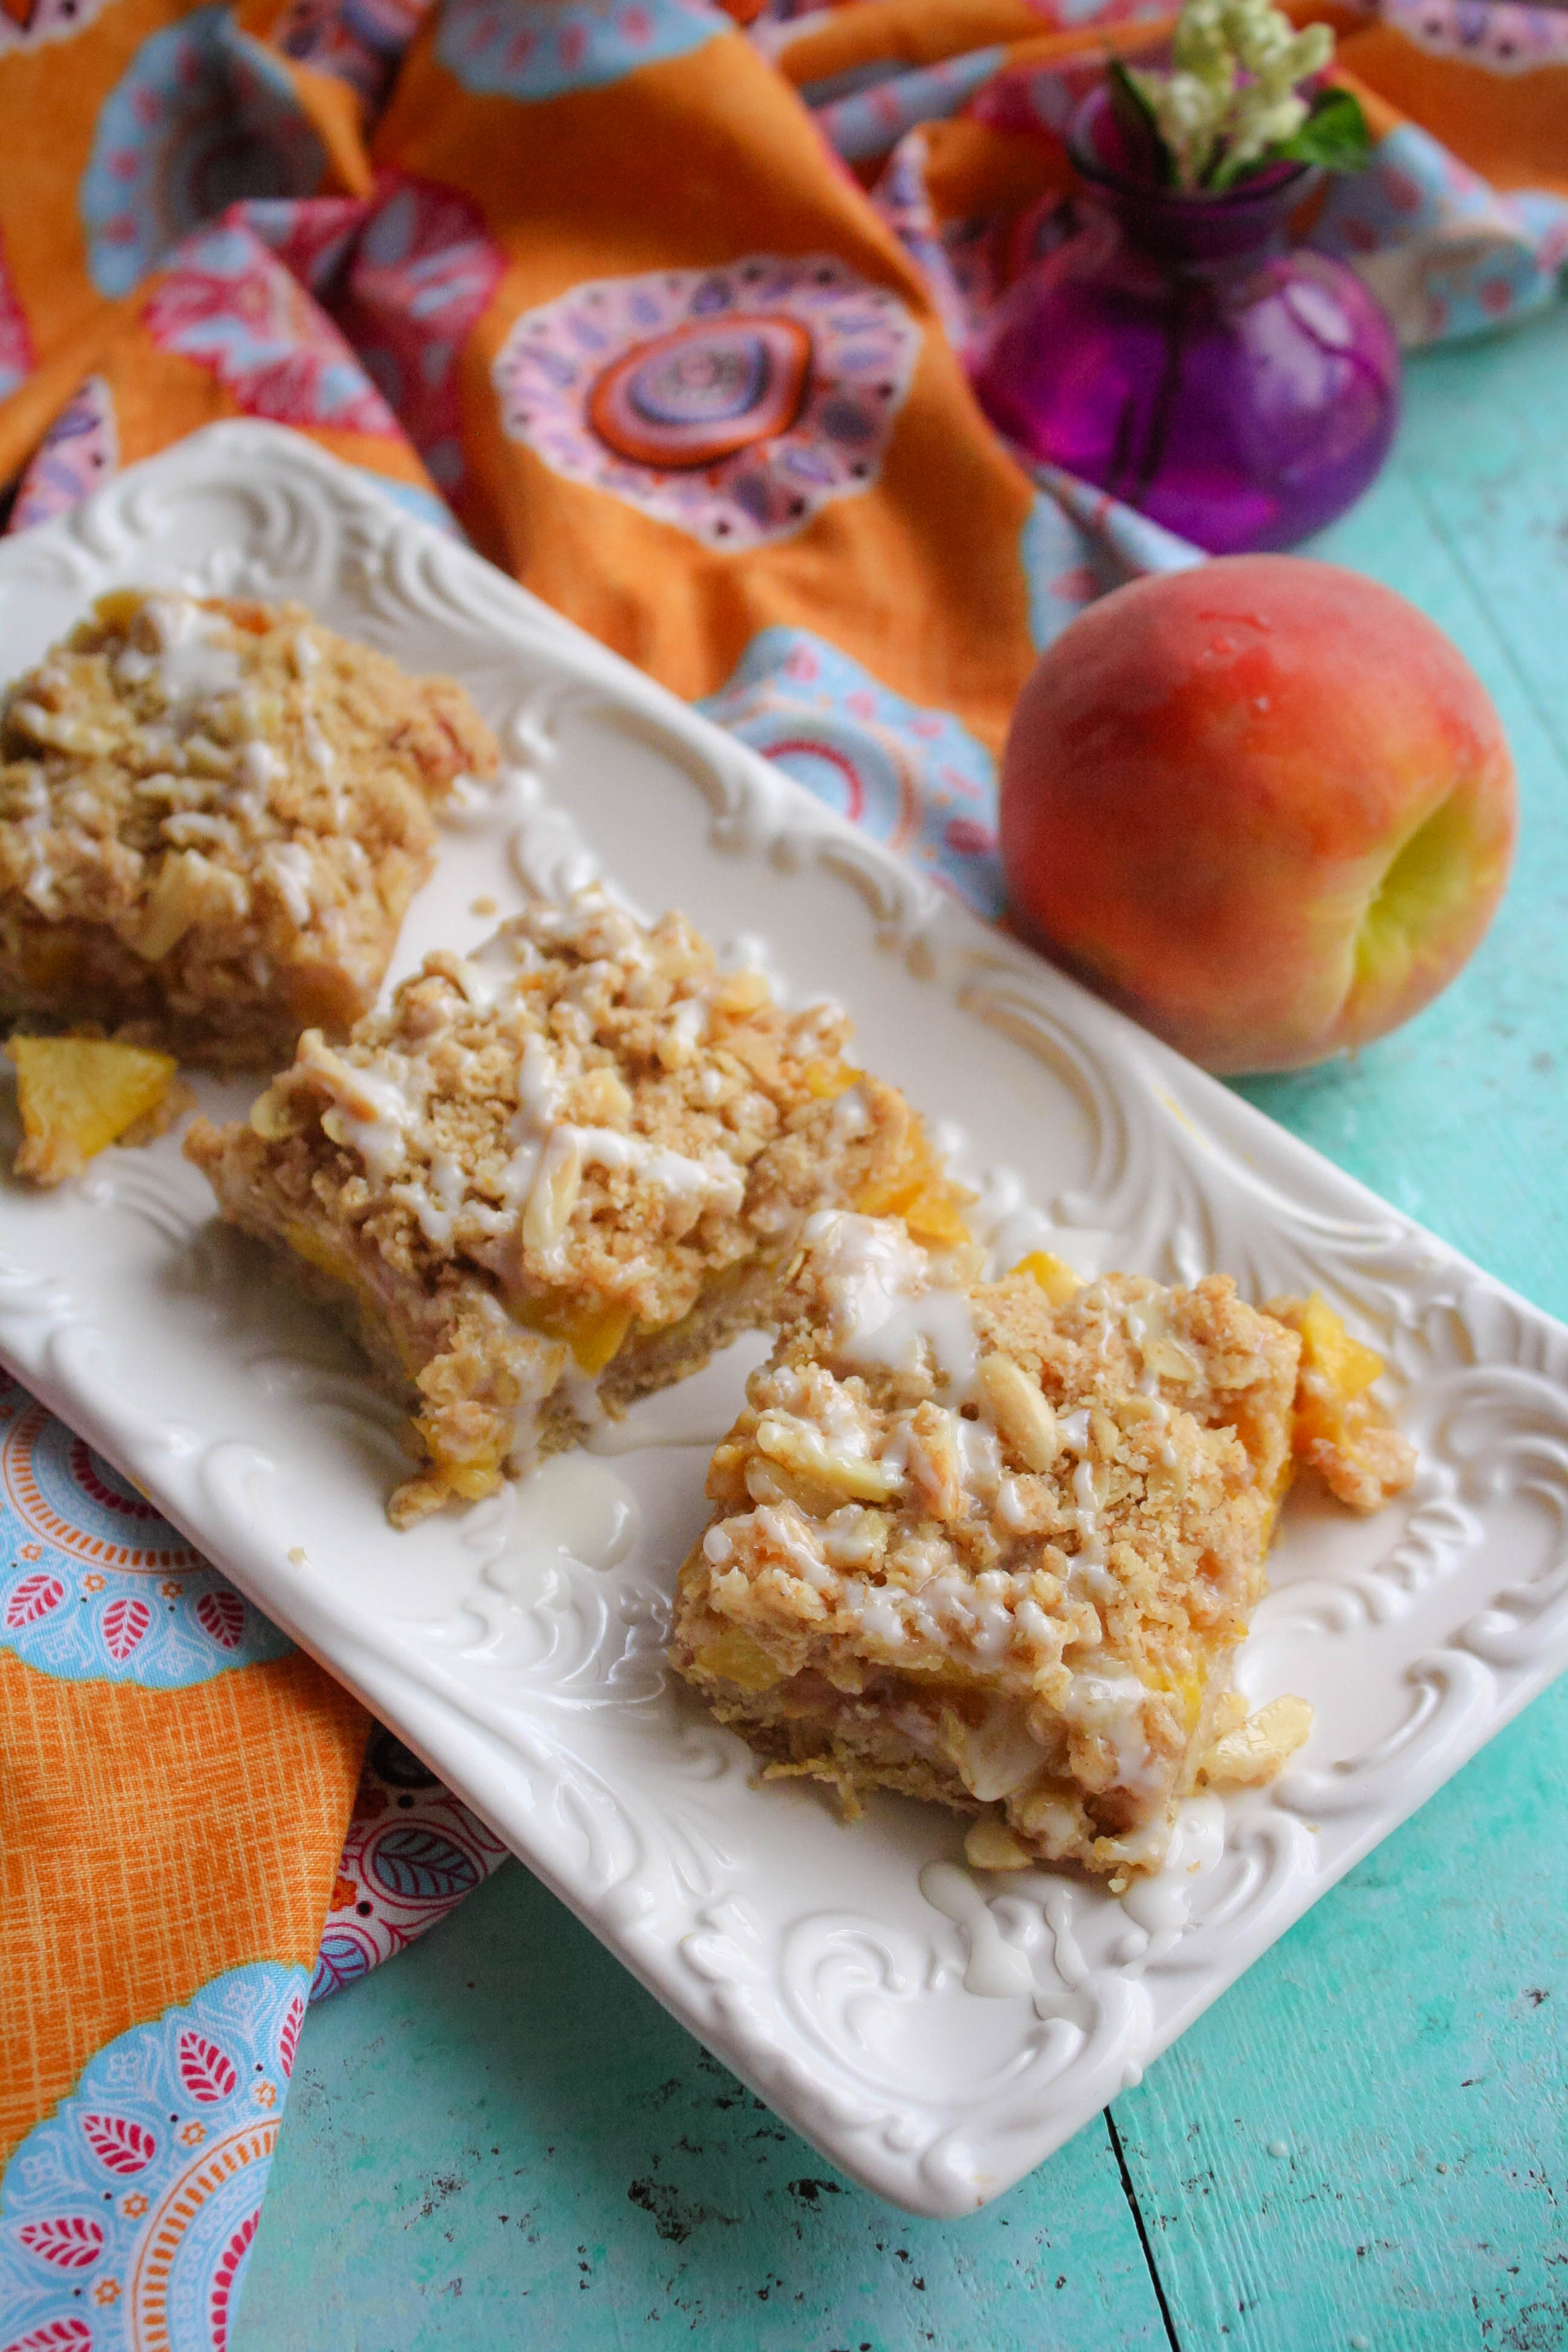 Peach Crumble Squares with Bourbon Glaze make a luscious sweet treat this season. Peach Crumble Squares with Bourbon Glaze are special summertime treats, for sure!